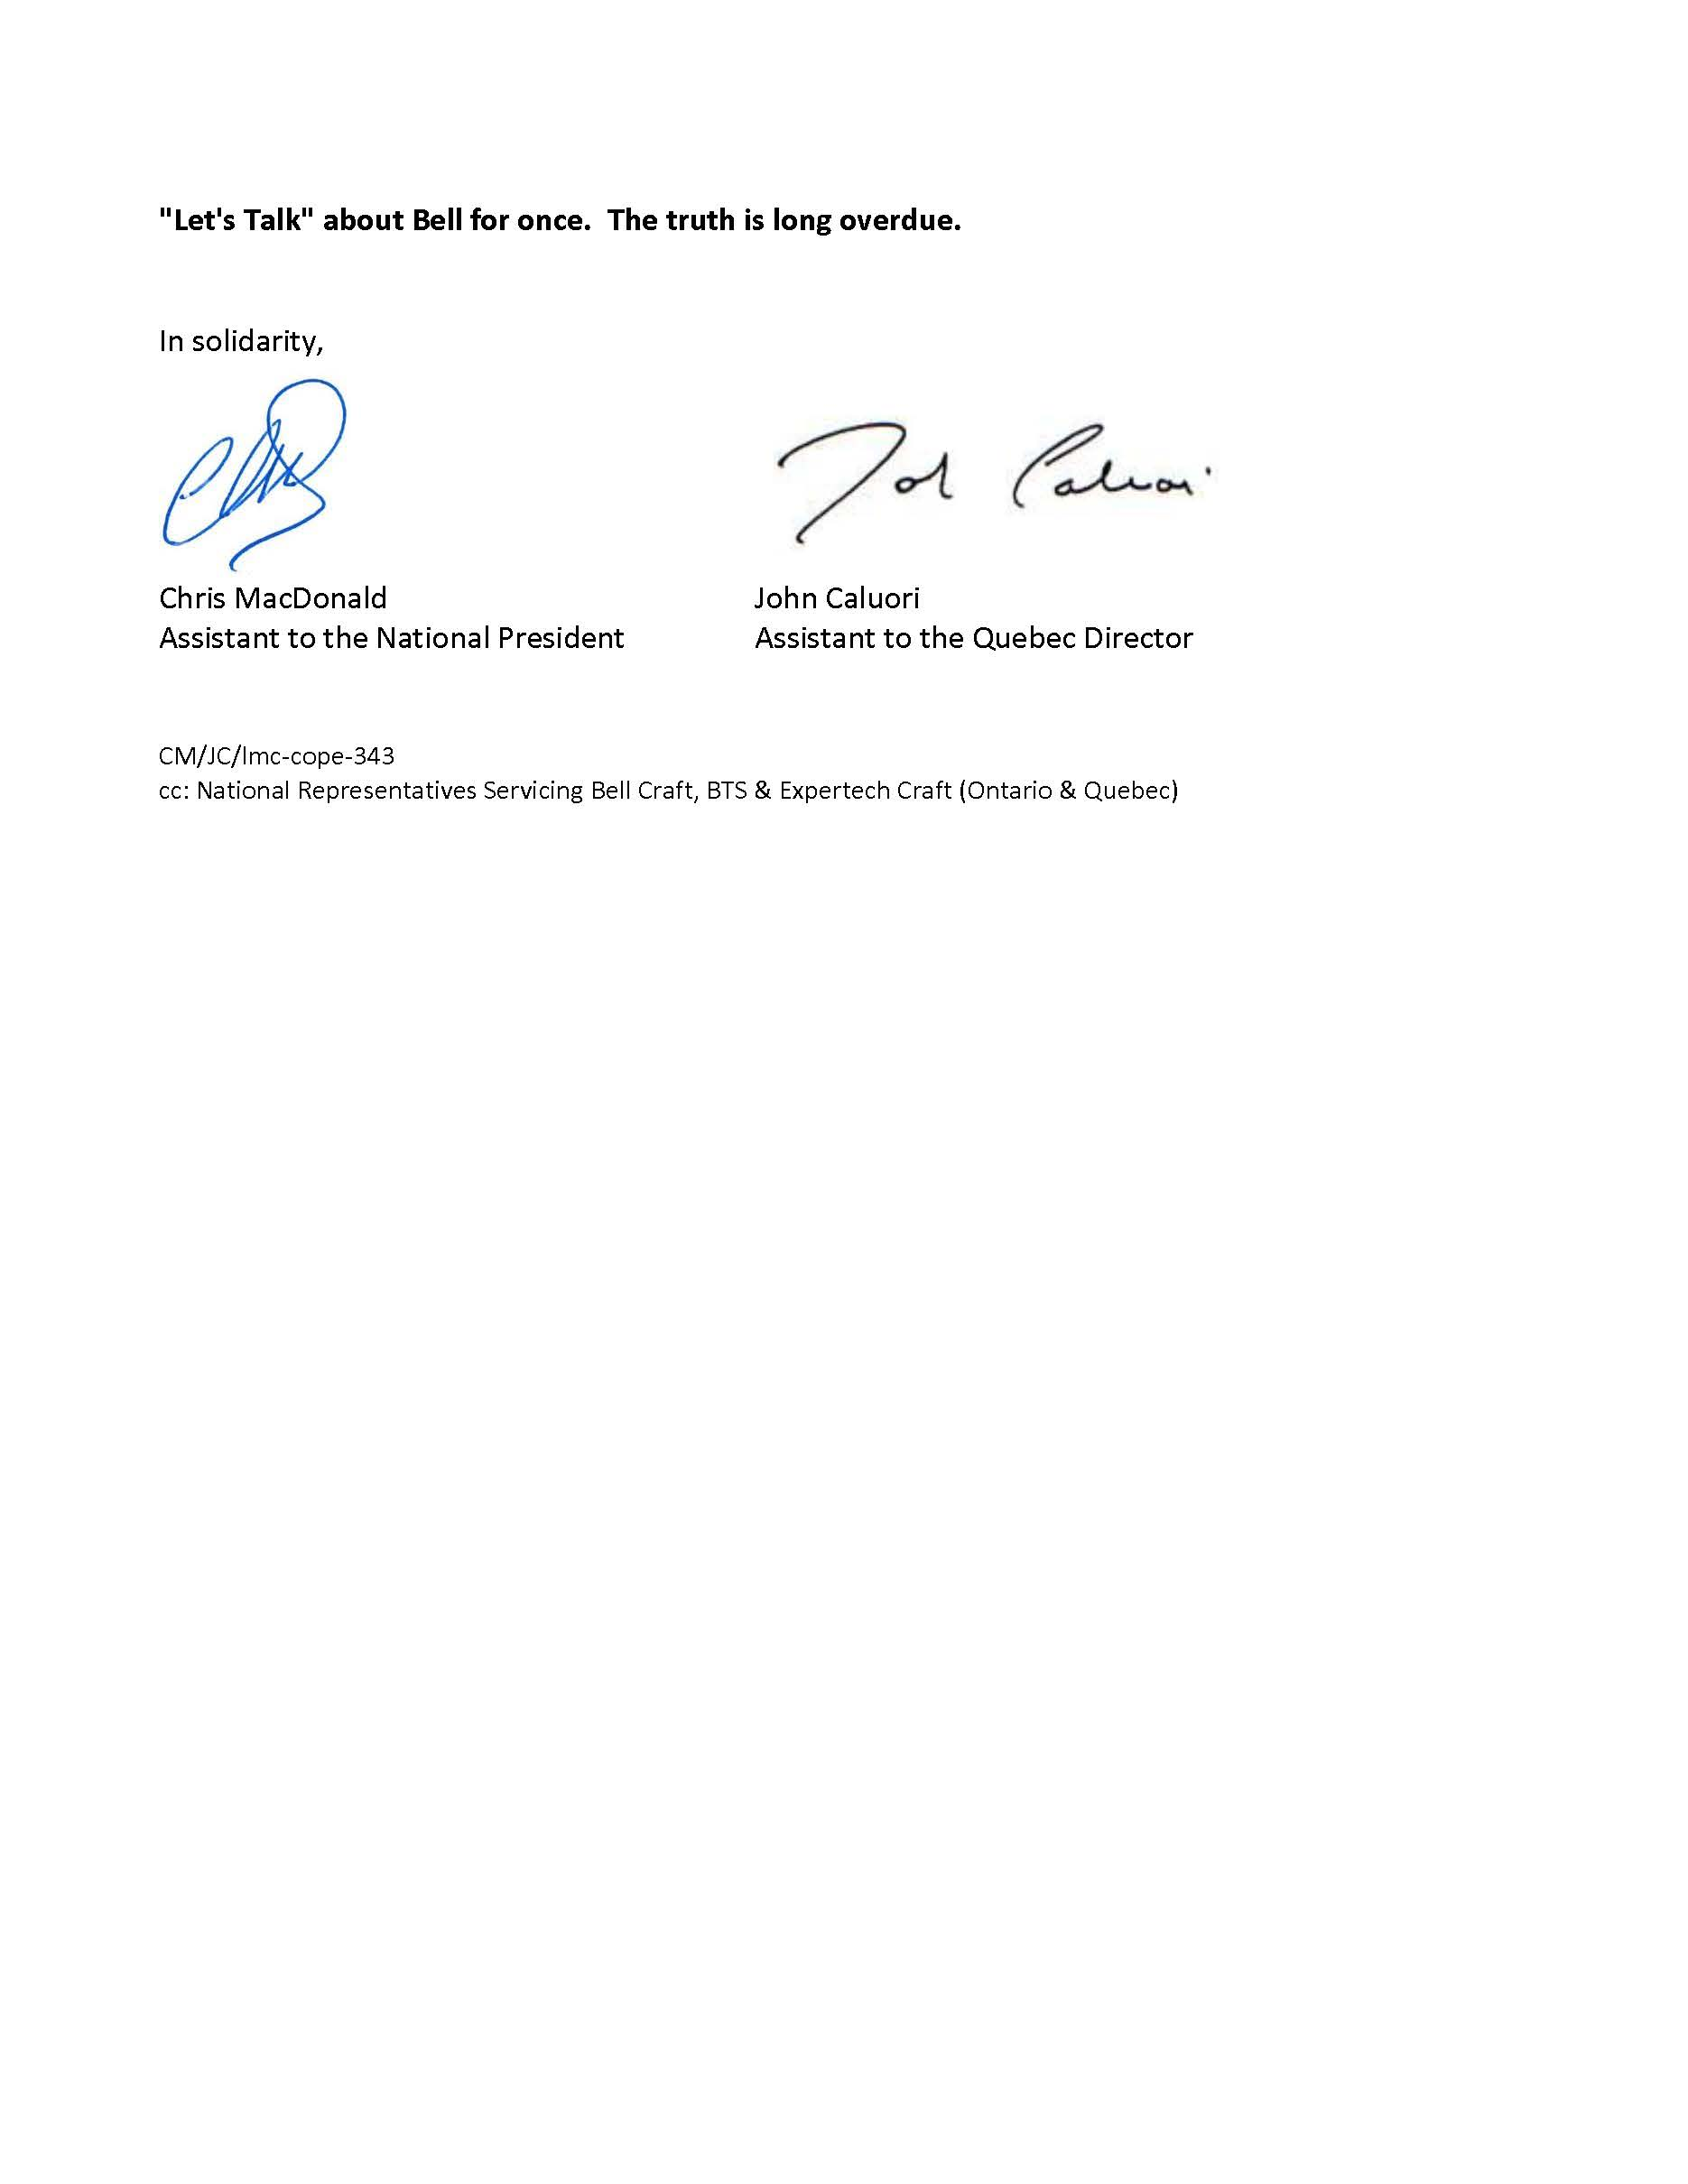 2019-04-08-Letter-to-Locals-Ontario-and-Quebec-re-Wireless-to-the-Home-Project[4962]_Page_2.jpg